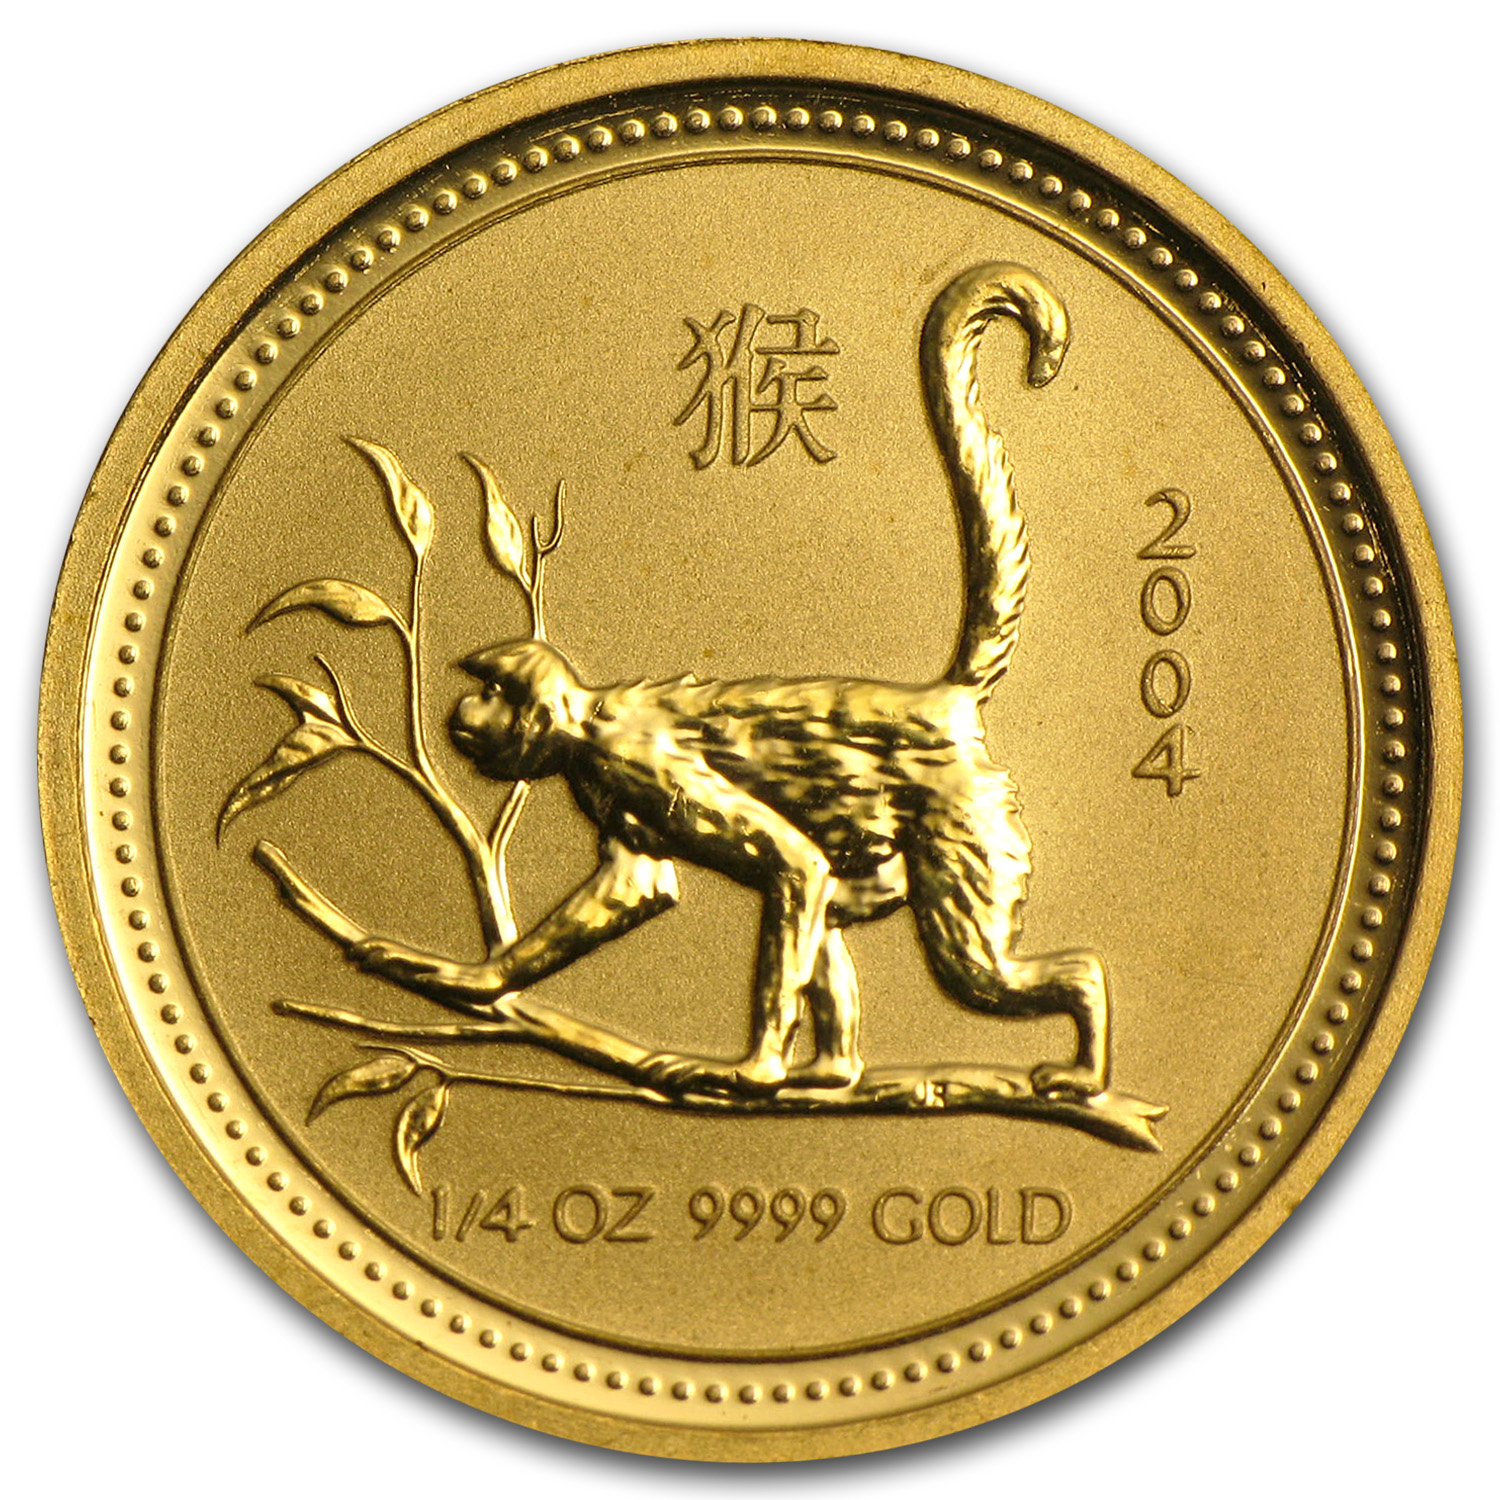 2004 1/4 oz Gold Year of the Monkey Lunar Coin (SI) Abrasions